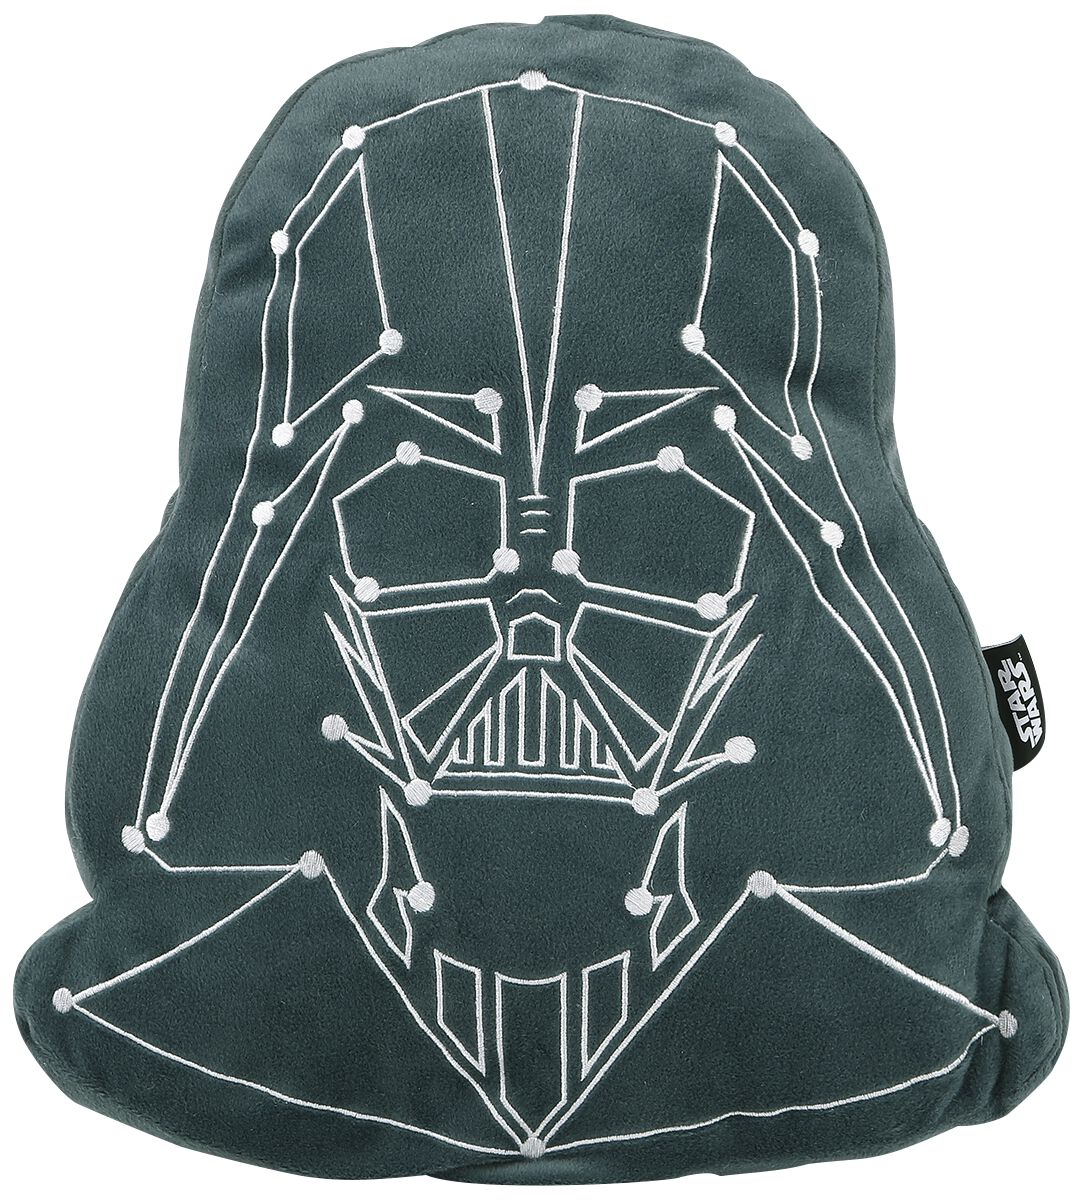 Image of   Star Wars Darth Vader Dekorationspude sort